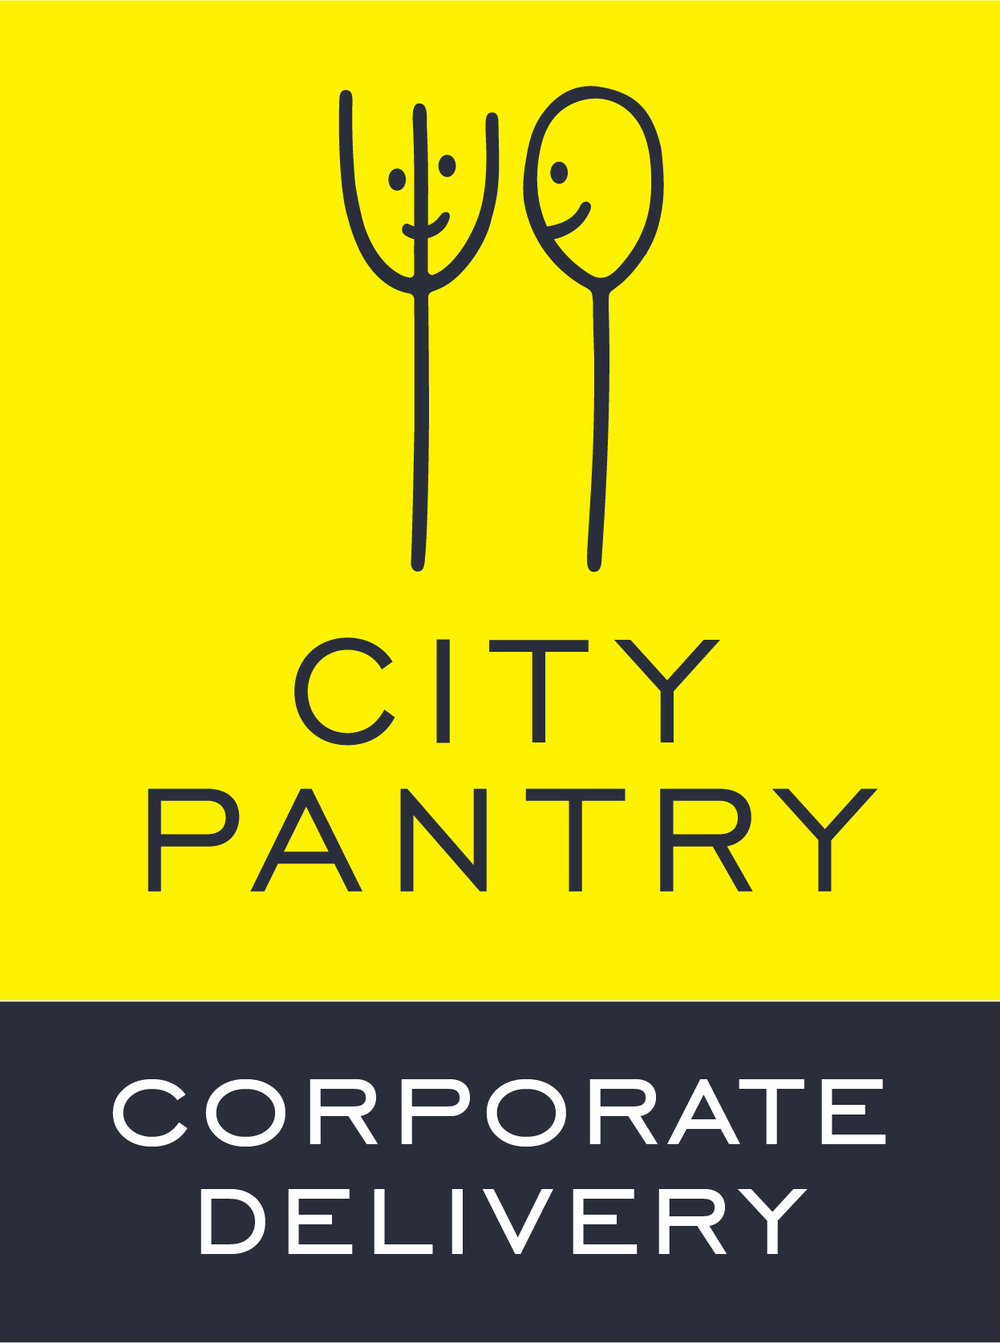 https://citypantry.com/menus/vendors/rock-my-bowl/menu?date=2018-10-22T13%3A00&utm_source=referral&utm_campaign=vendor-backlink